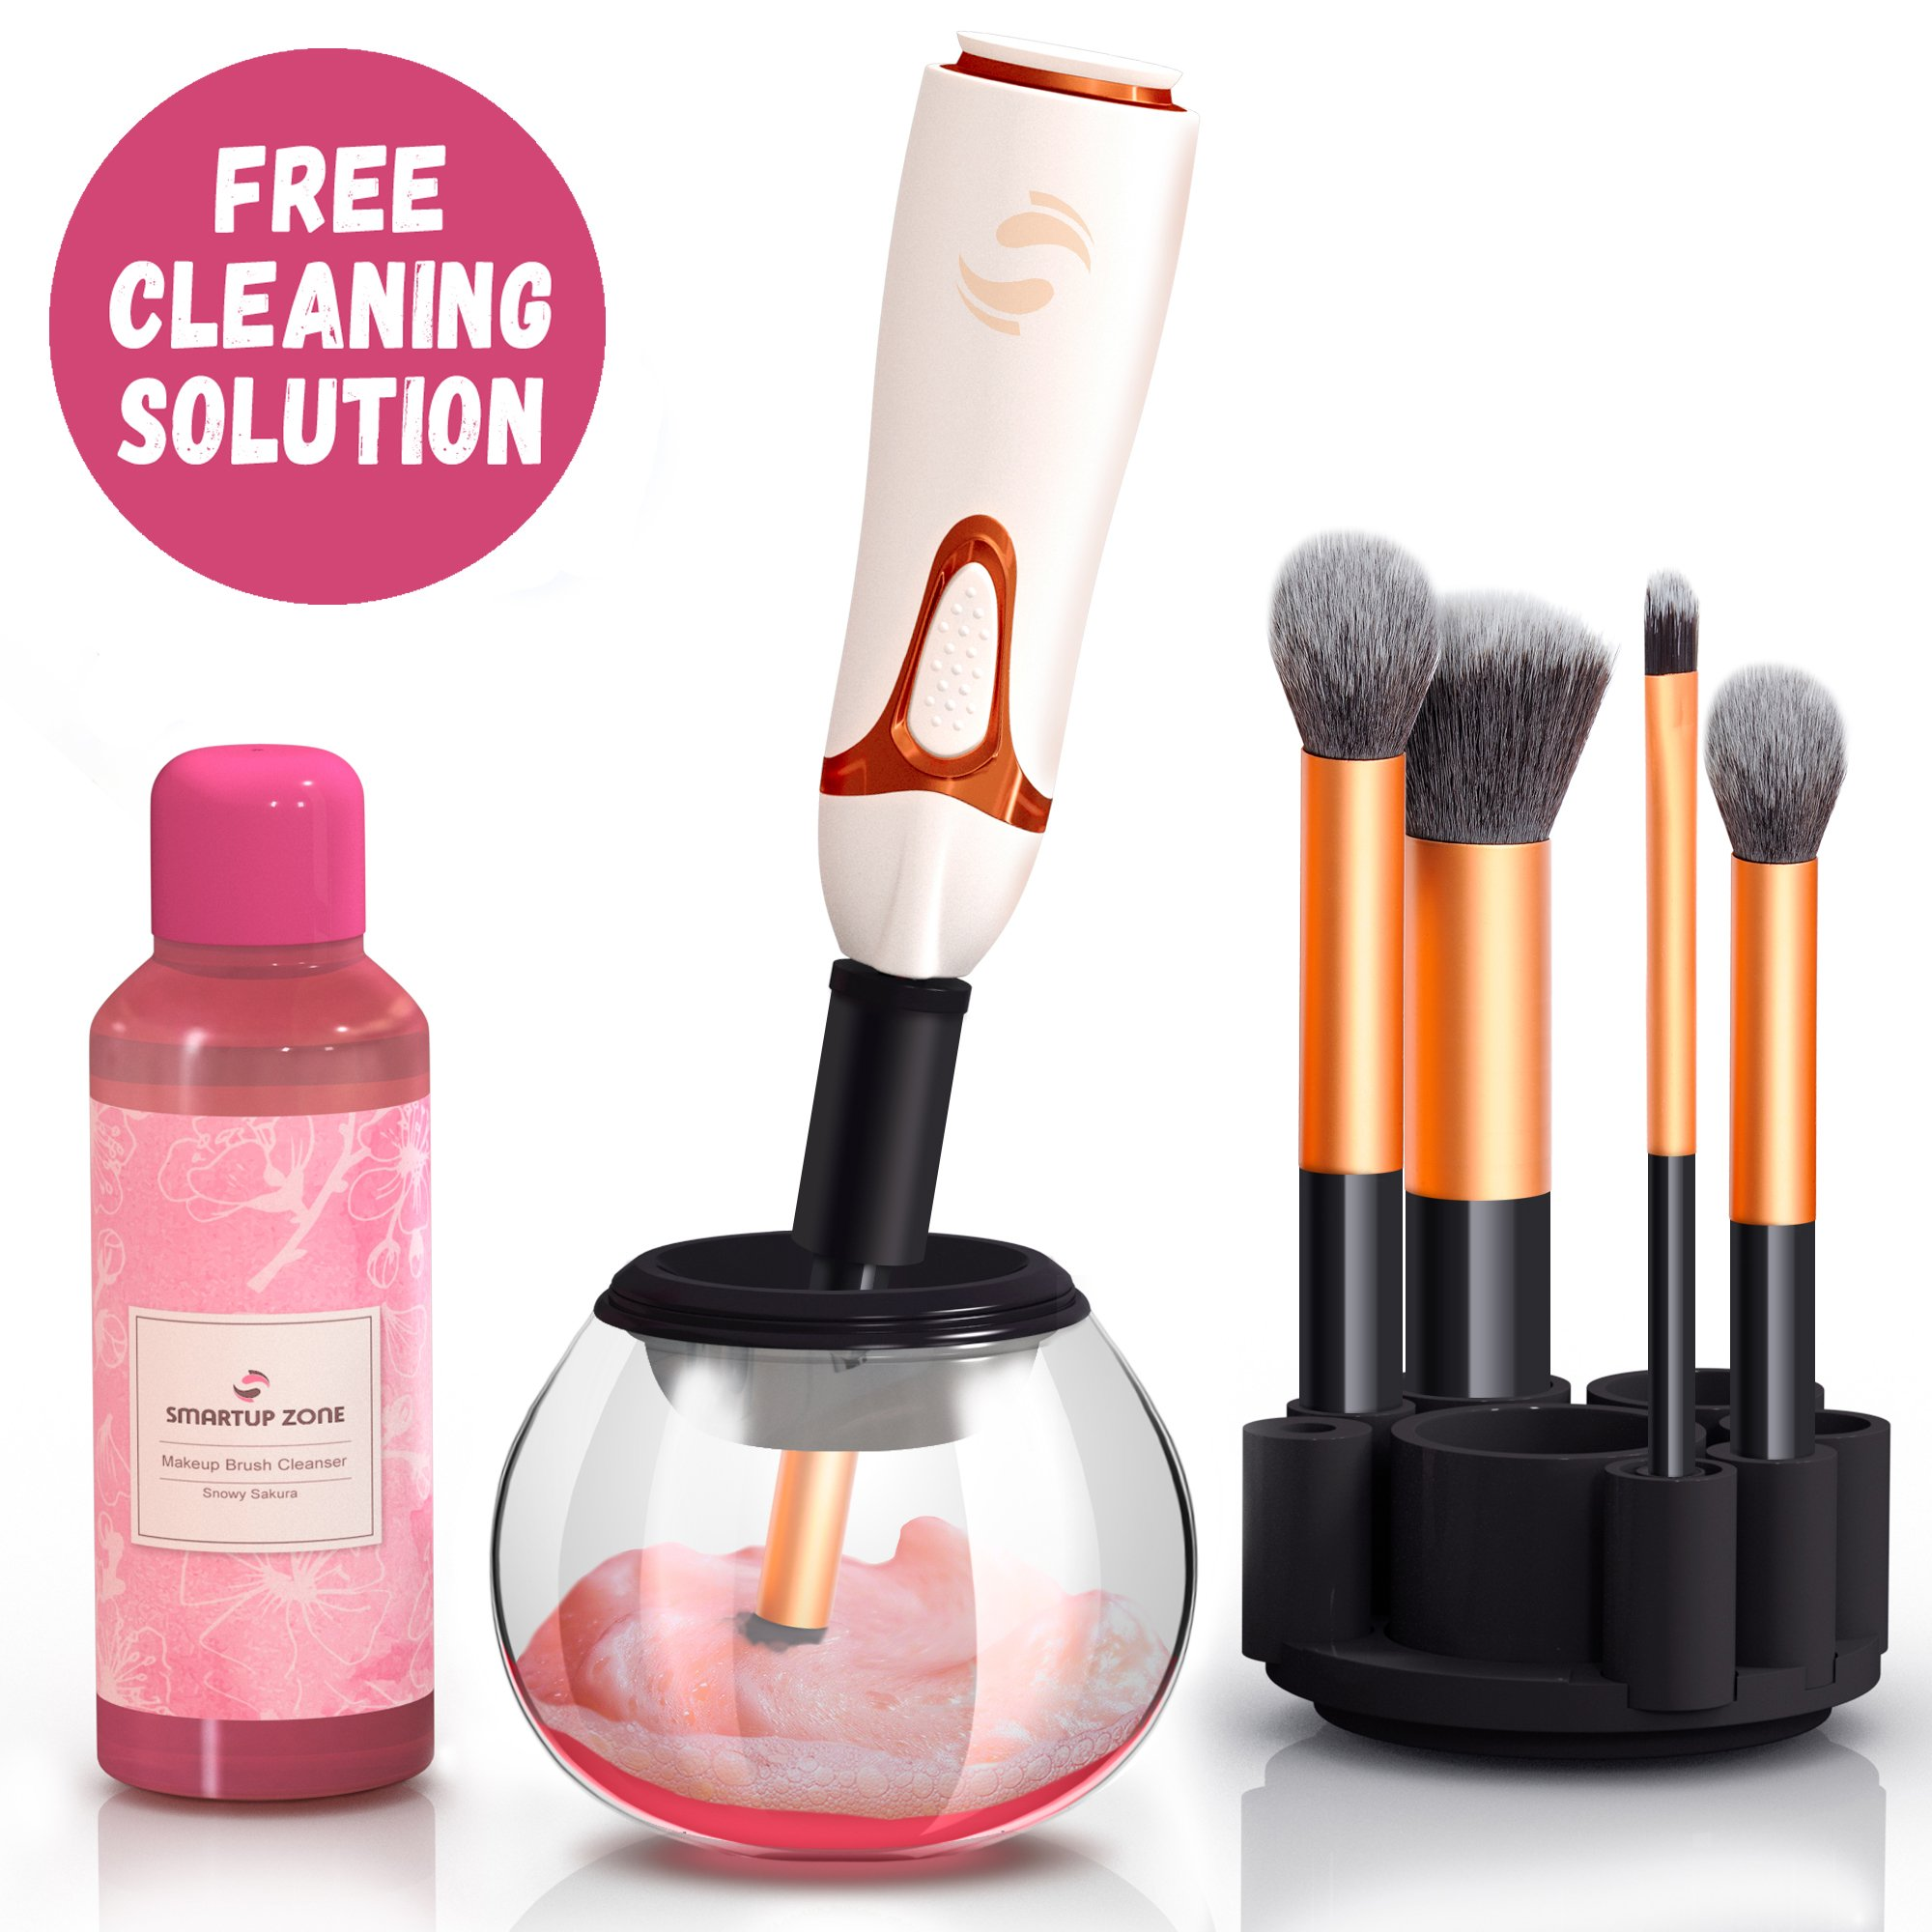 Get Quotations · Professional Makeup Brush Cleaner Automatic Spin Makeup Brush Cleaner Dryer Machine Bonus Cleaning Solution Best Electric